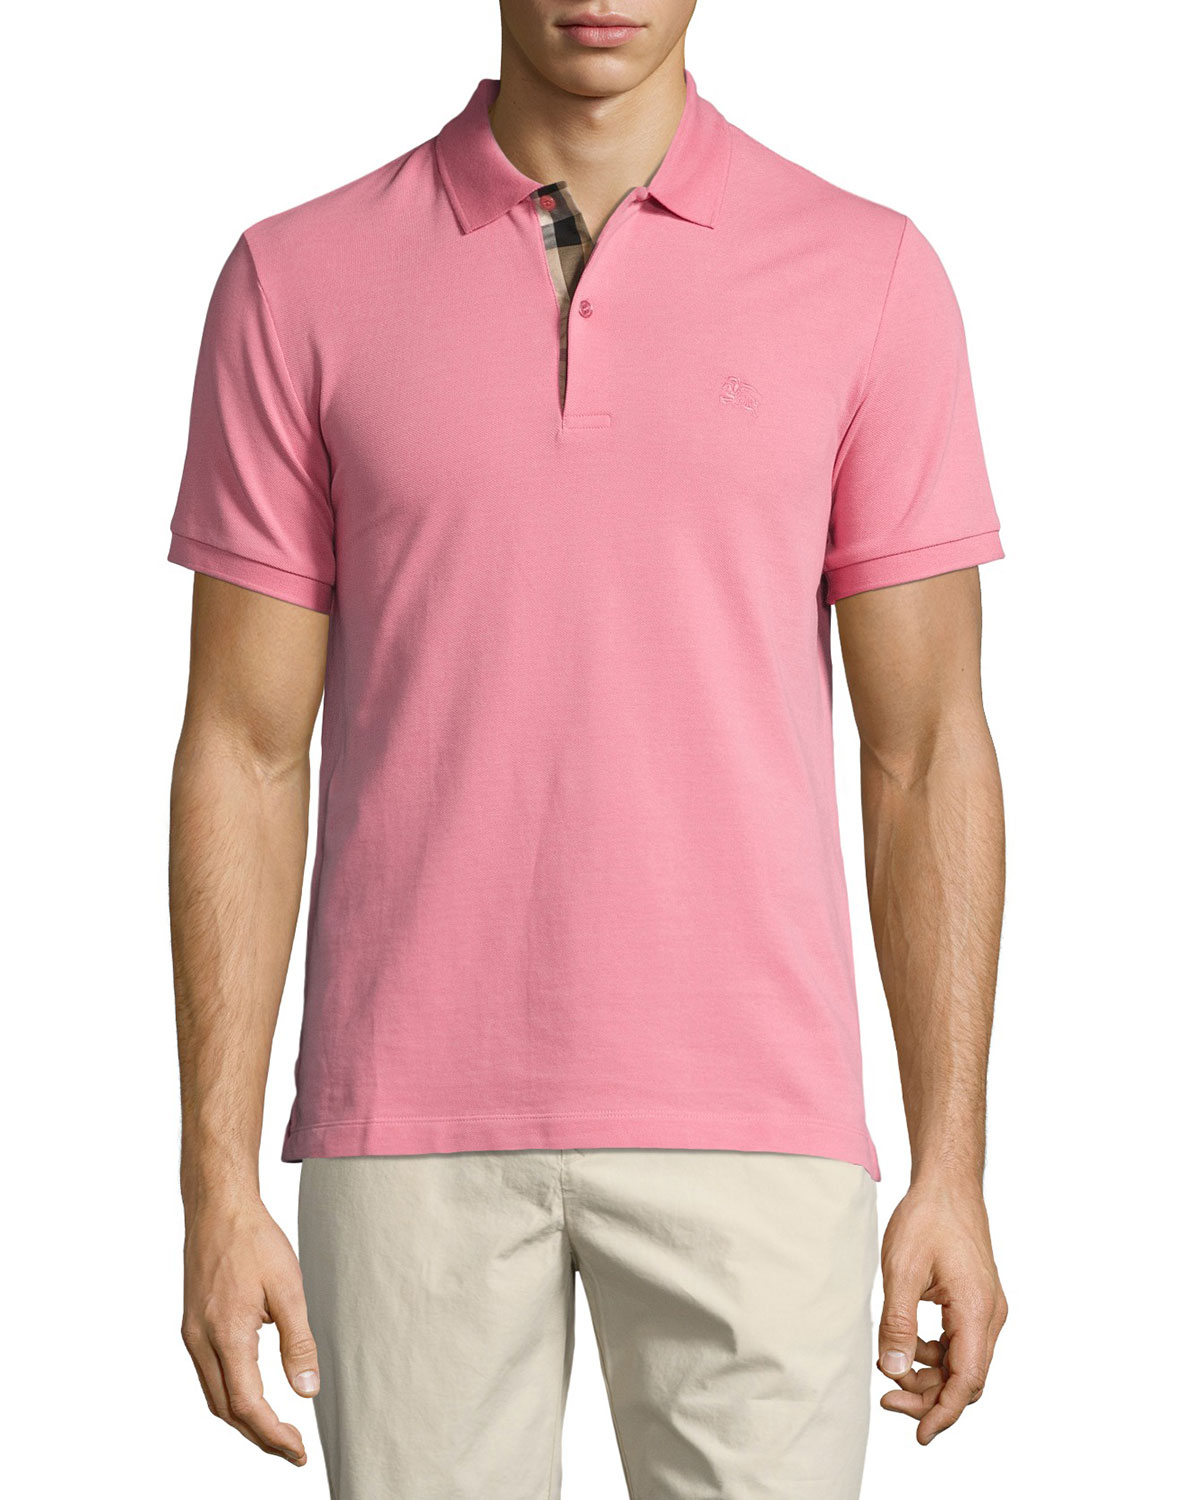 Short-Sleeve Oxford Polo Shirt, Light Pink